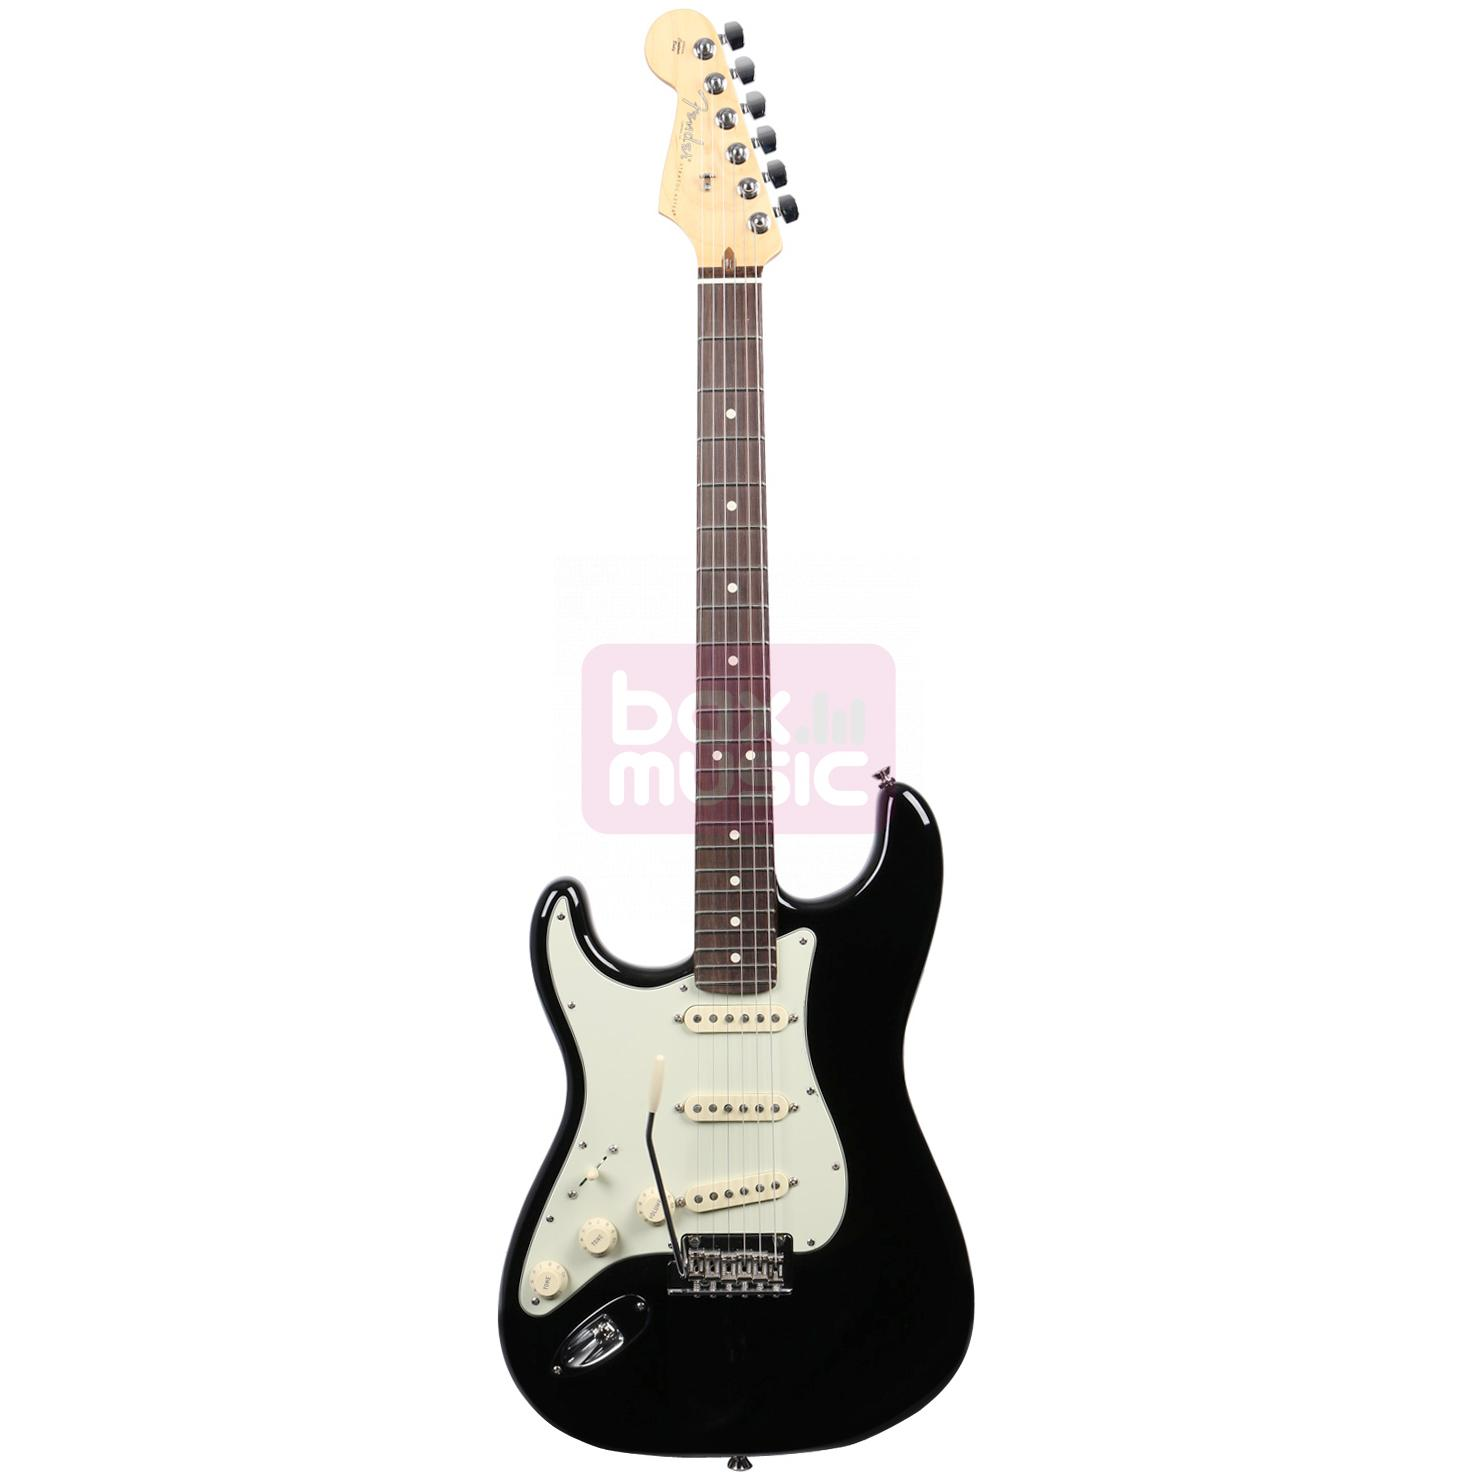 Fender American Professional Stratocaster LH Black RW